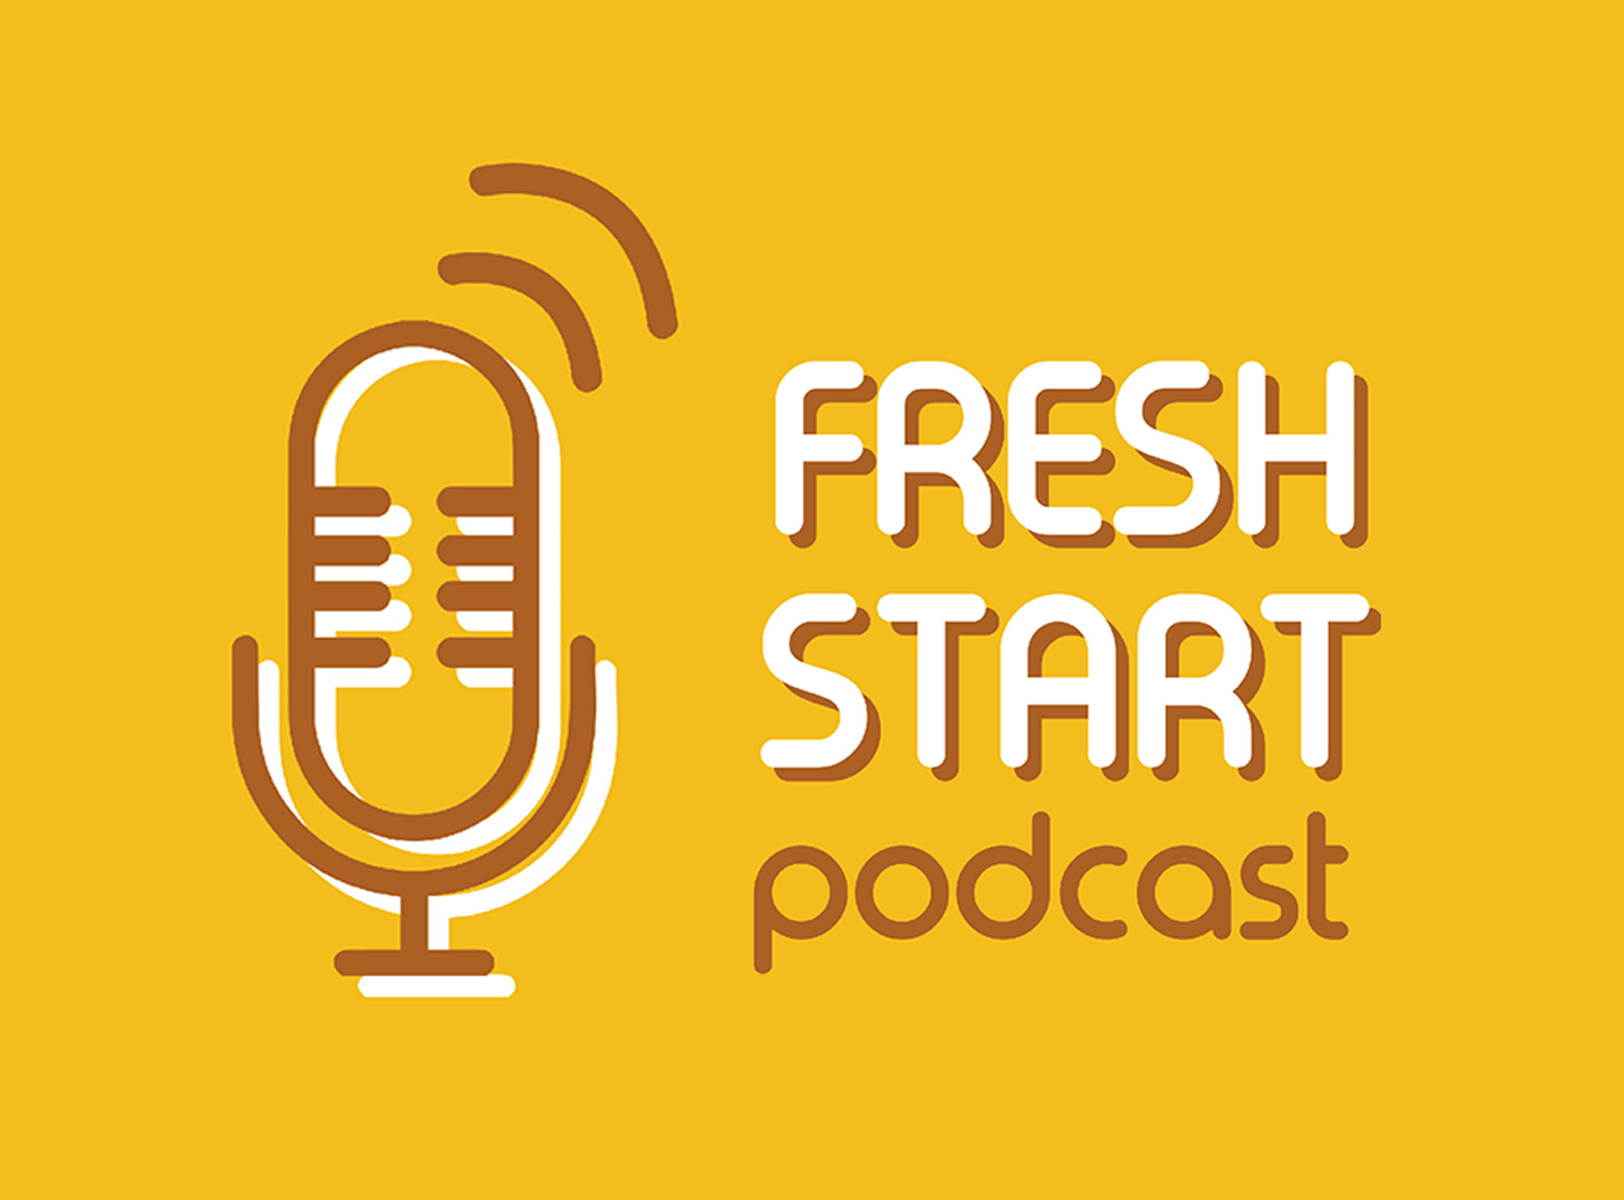 Fresh Start: Podcast News (12/31/2018 Mon.)